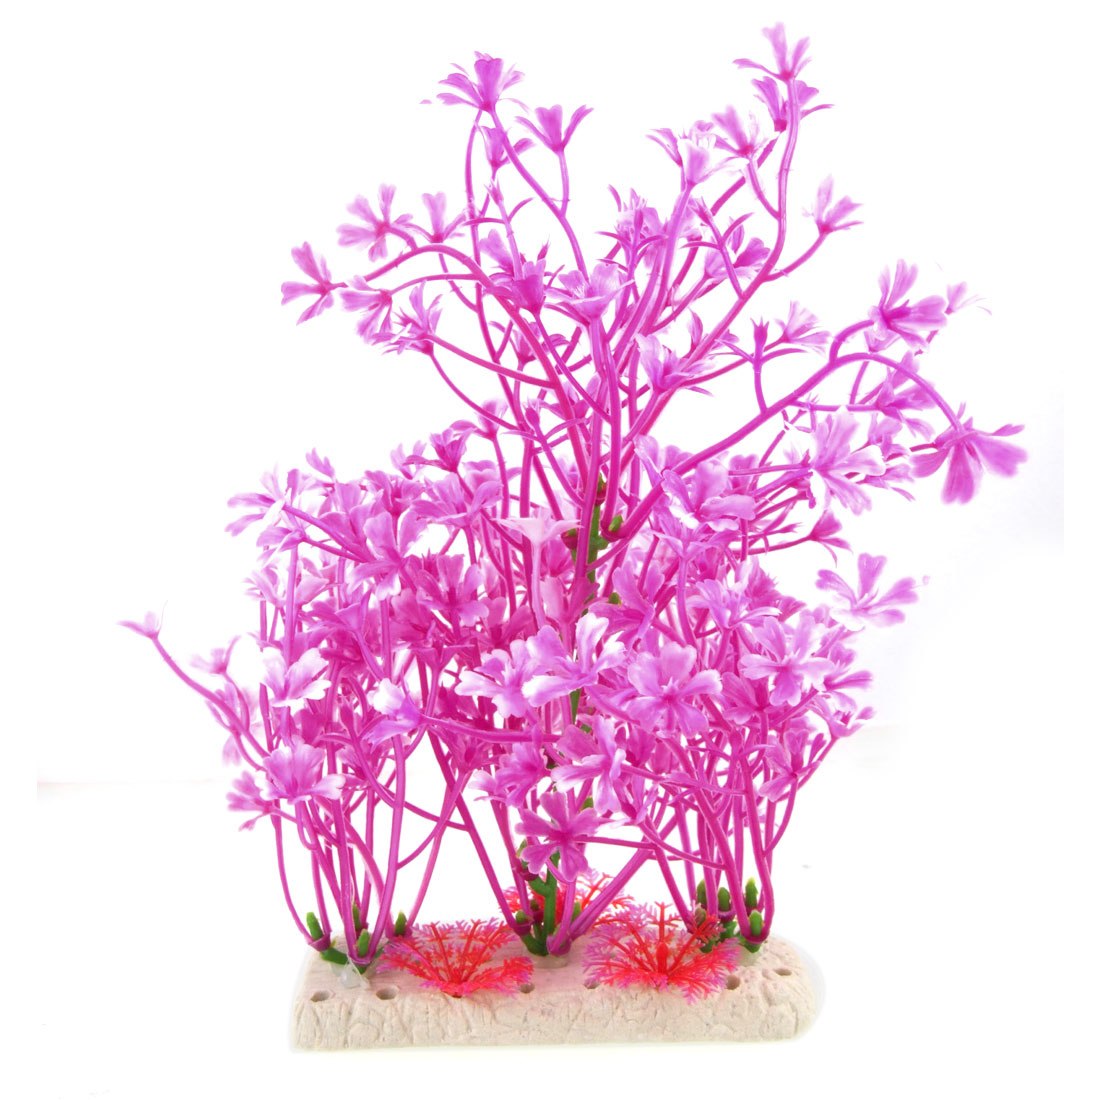 Purple White Artificial Plastic Plant Decor Ornament for Aquarium